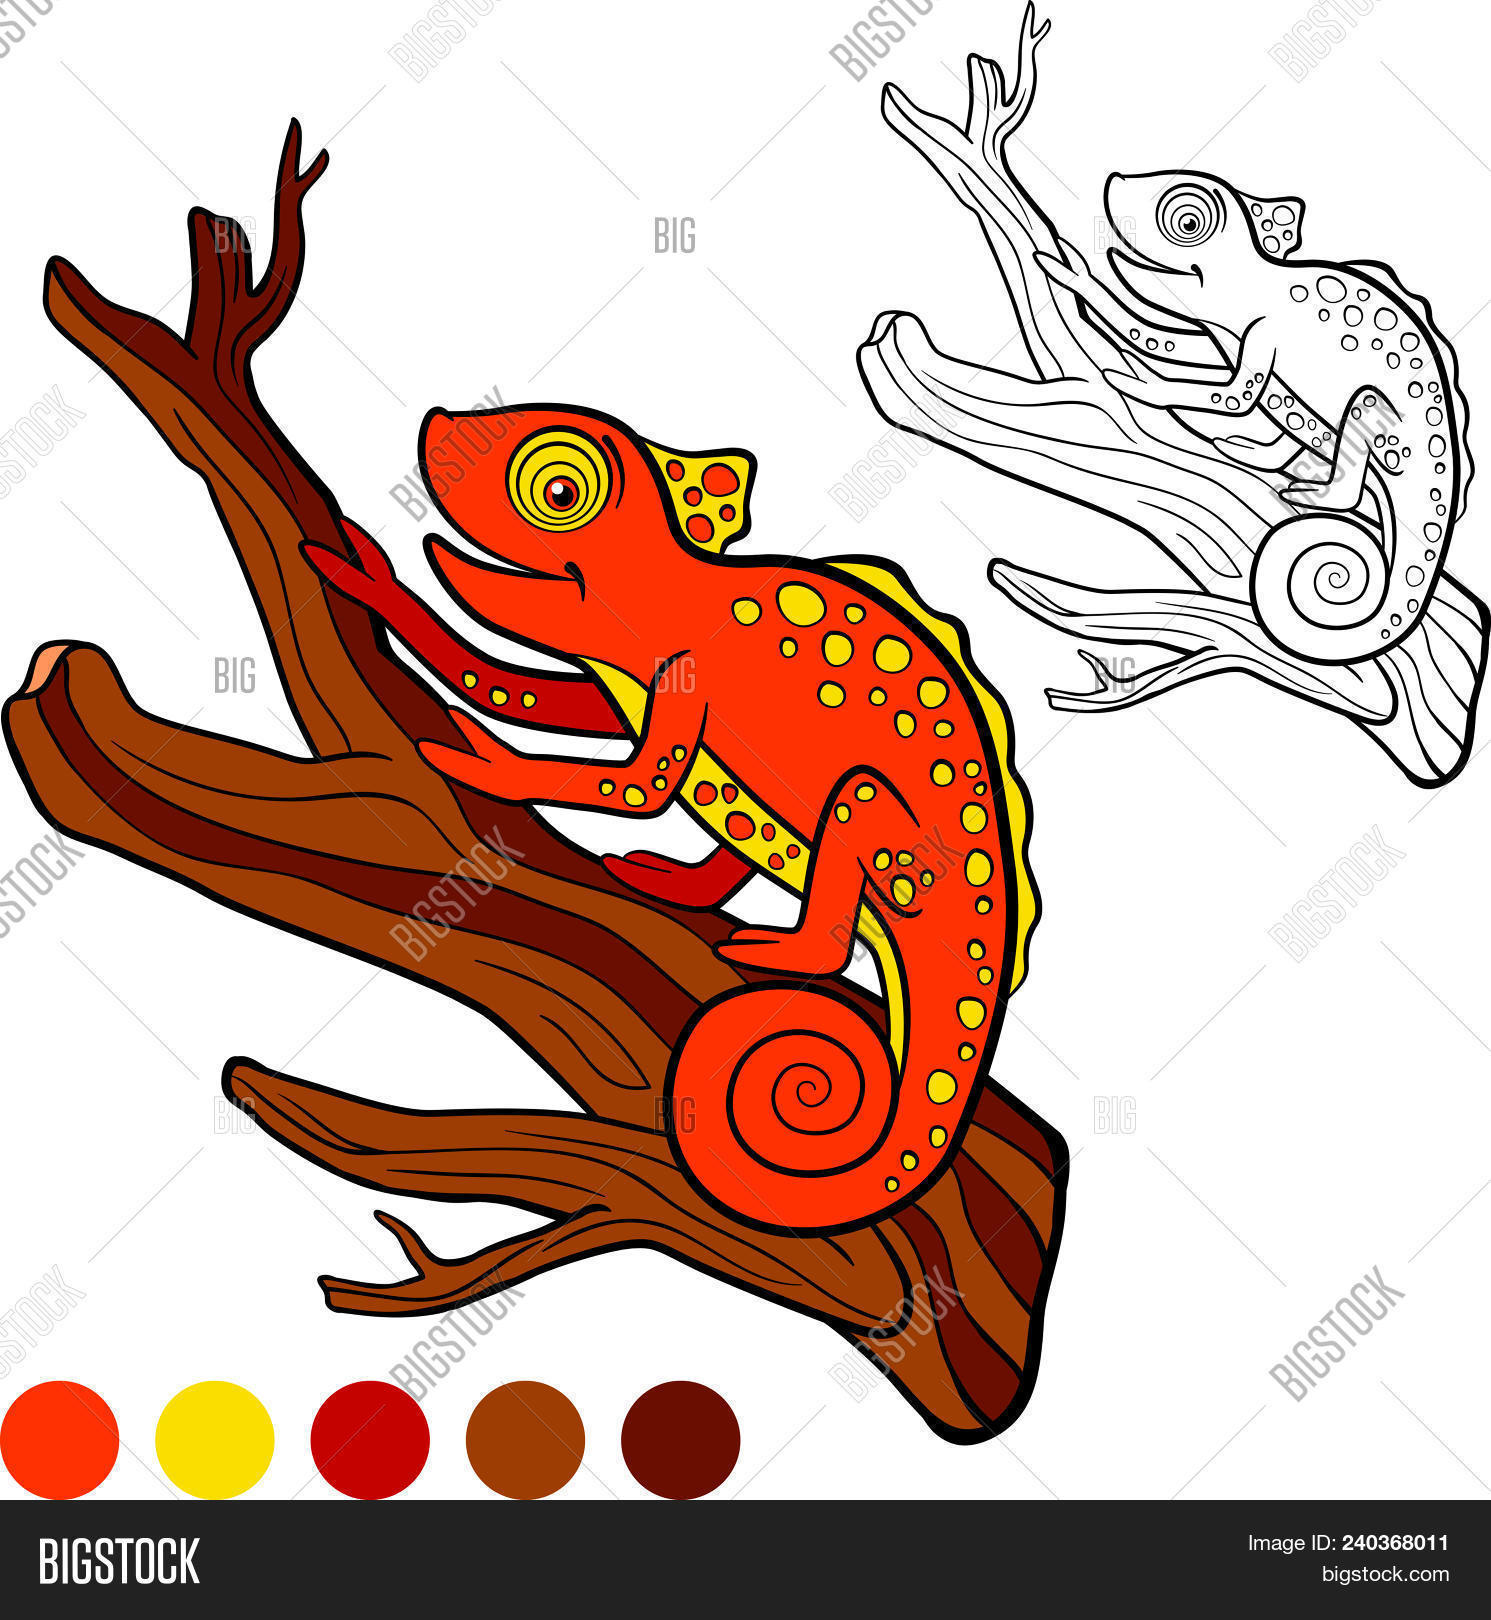 Coloring Page Color Me Chameleon Little Cute Orange Chameleon Sits On The Tree